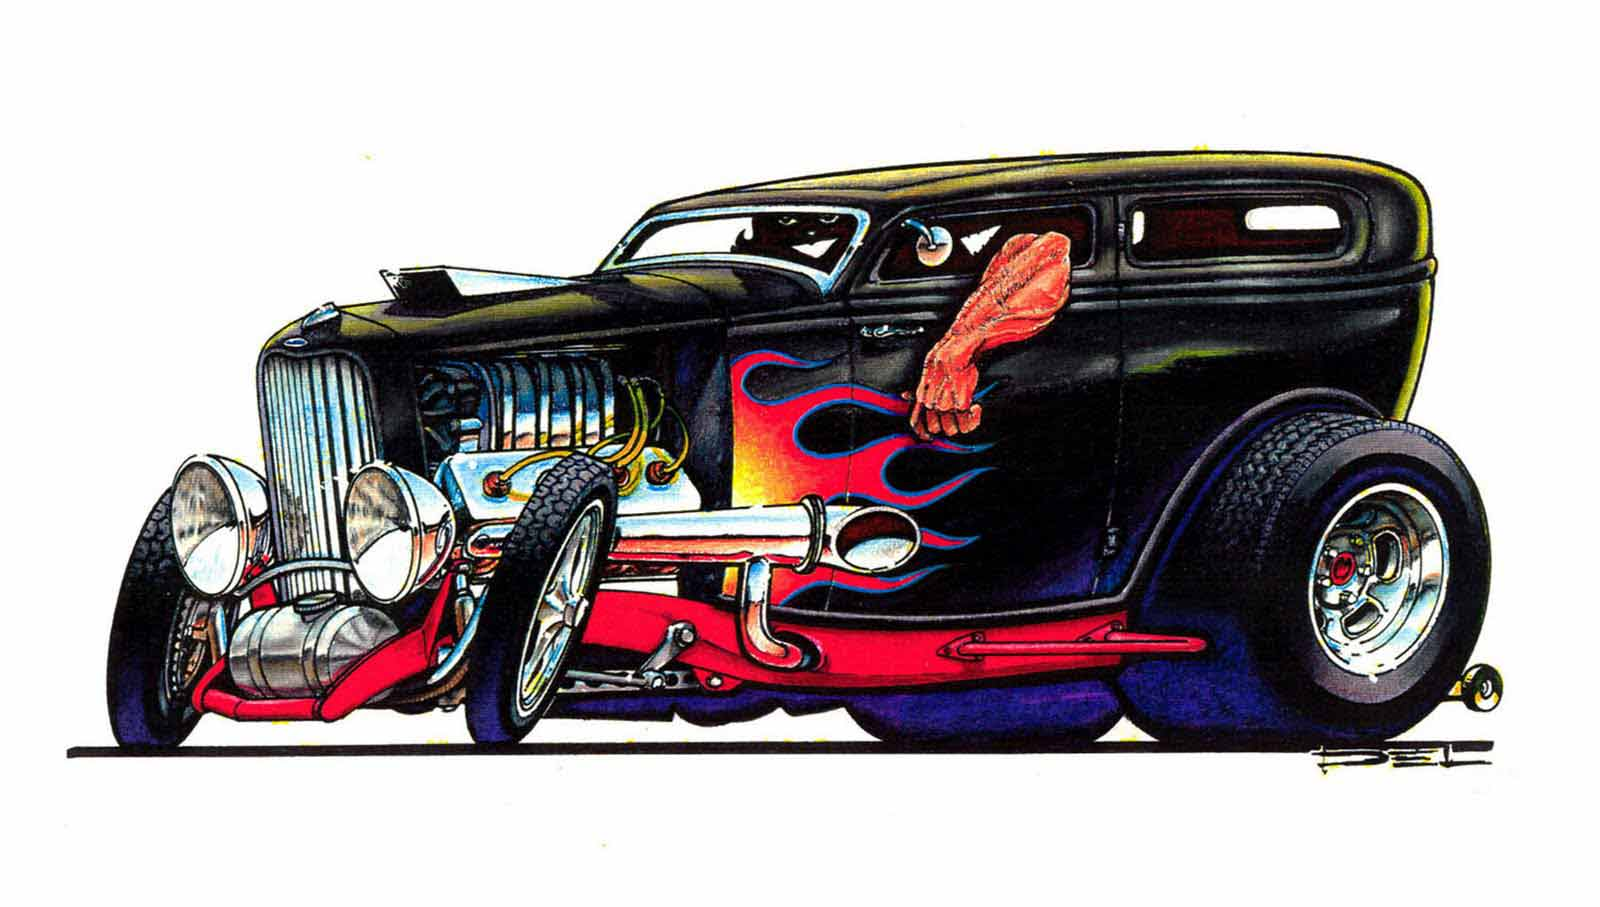 cartoons and hot rods swanson artworks rh delswanson com cartoon hot rod pics cartoon hot rod images